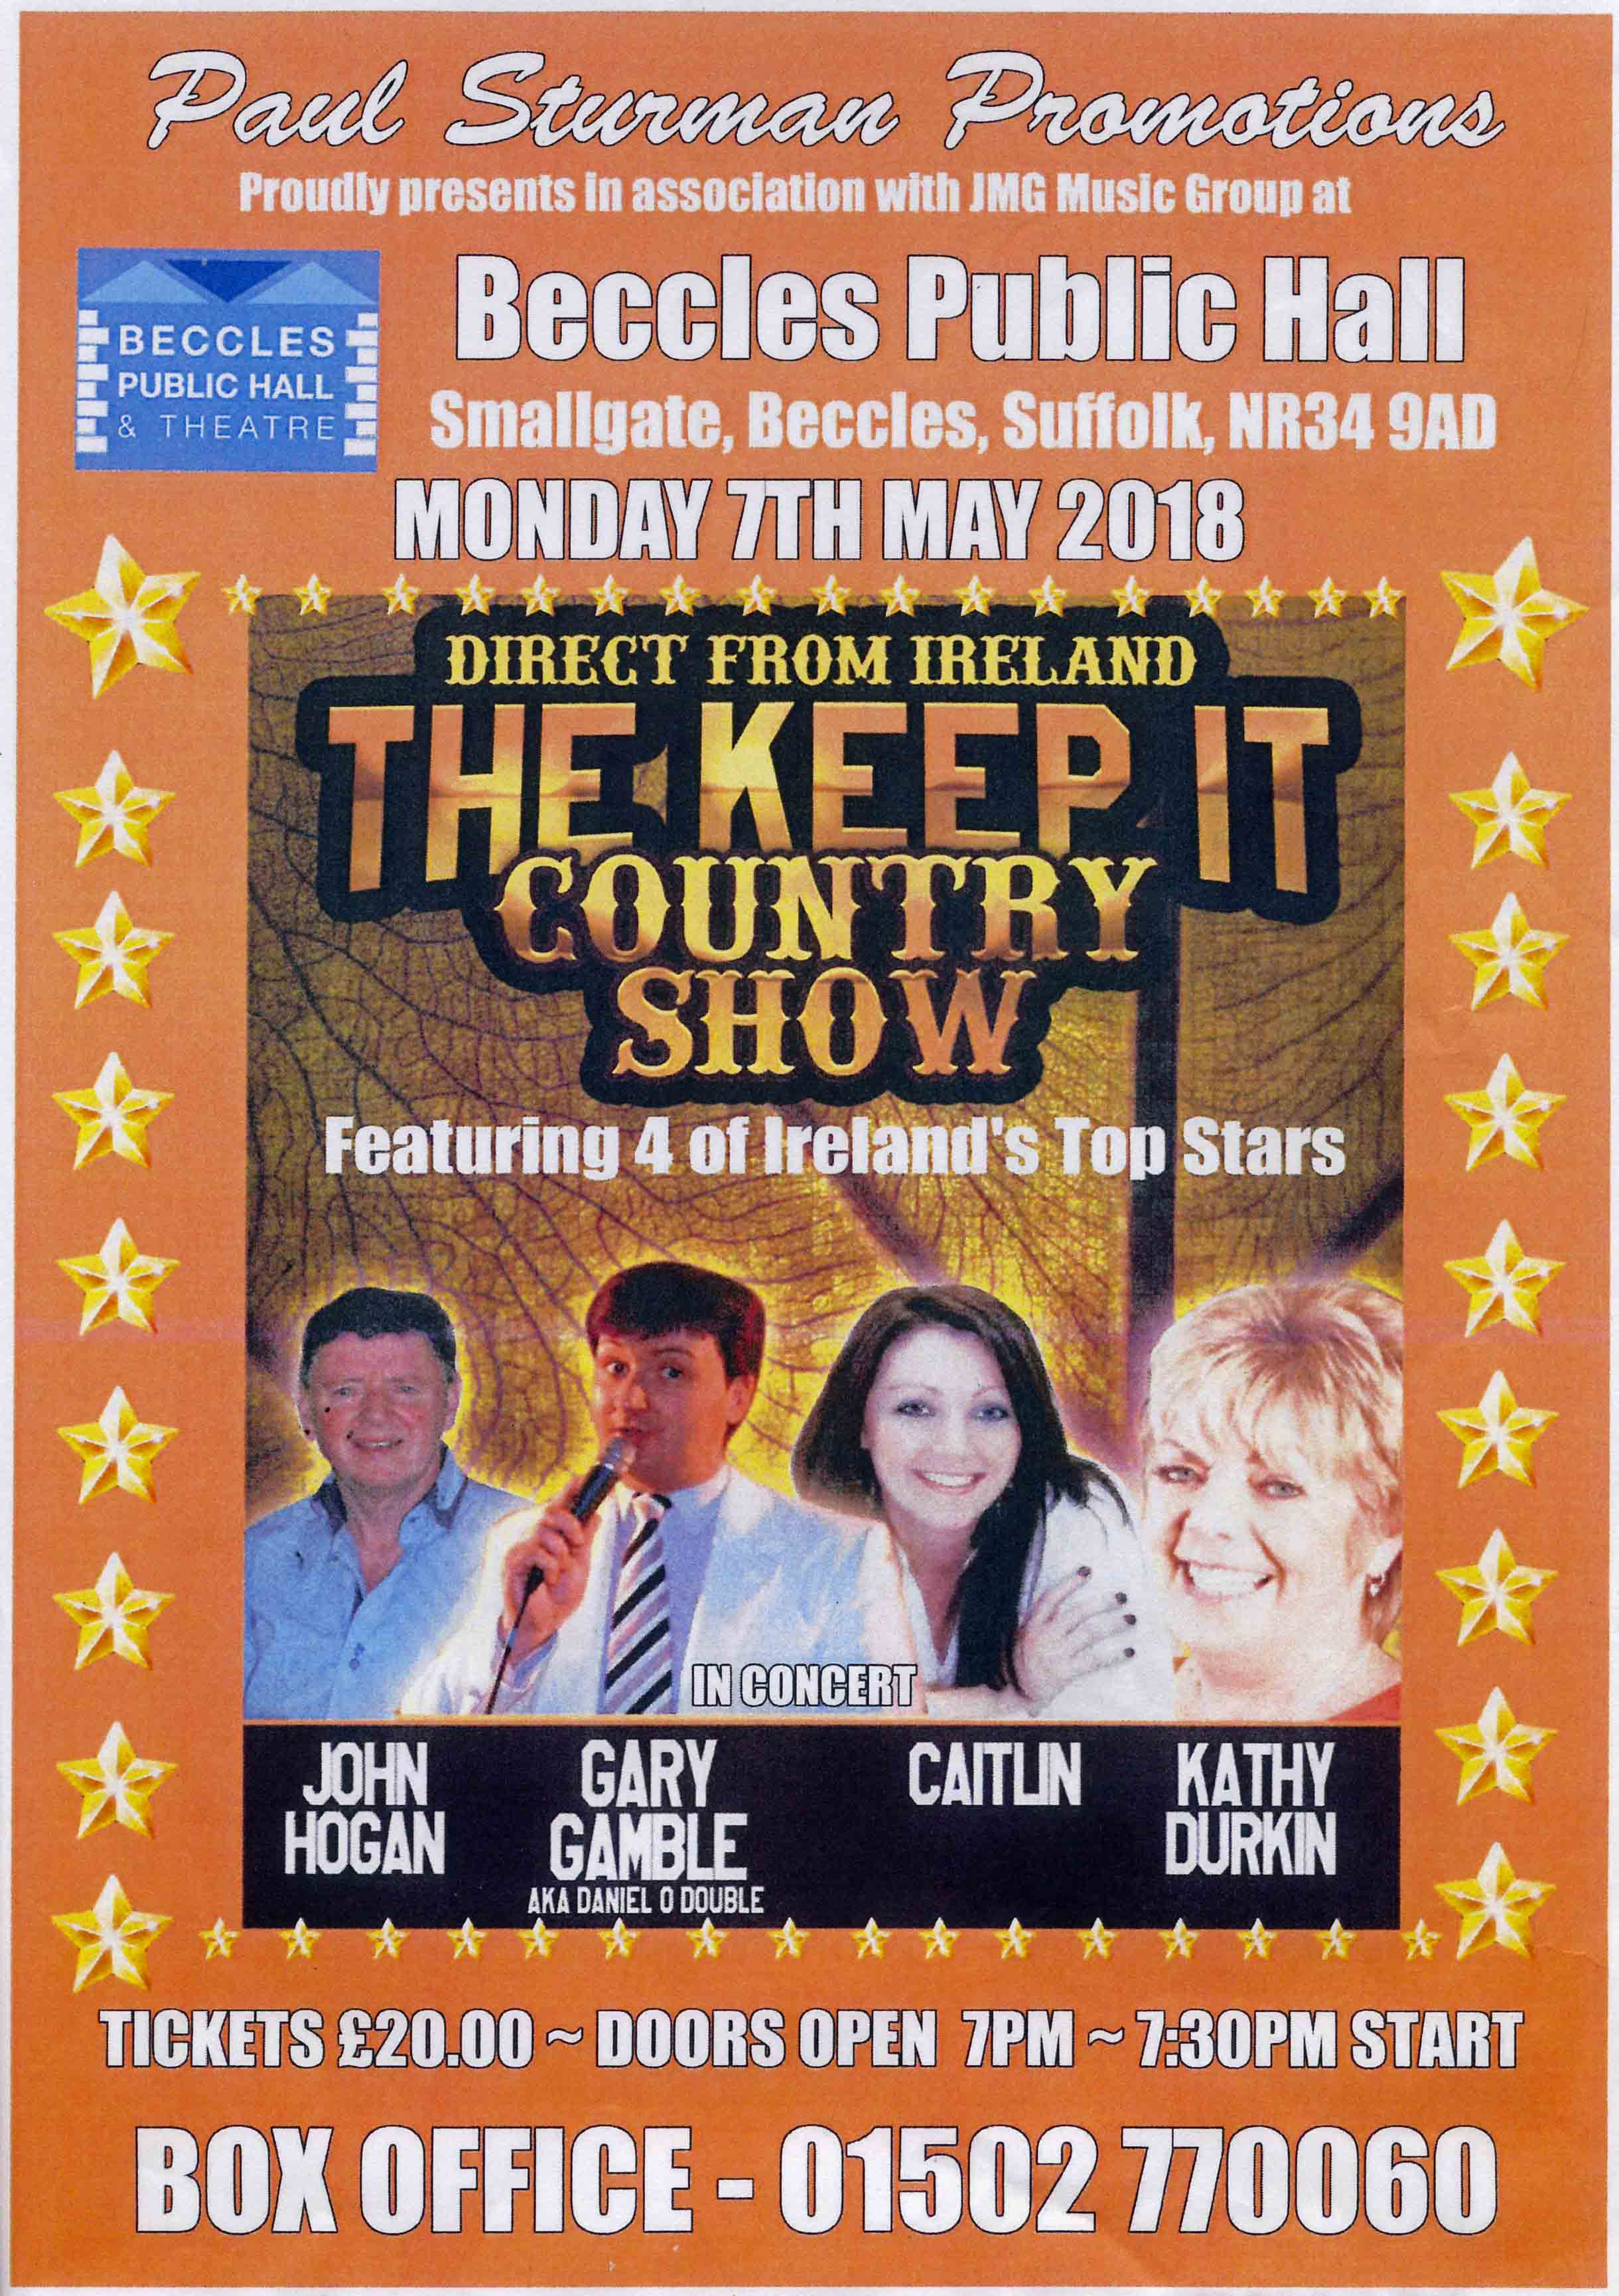 The Keep It Country Show at Beccles Public Hall & Theatre